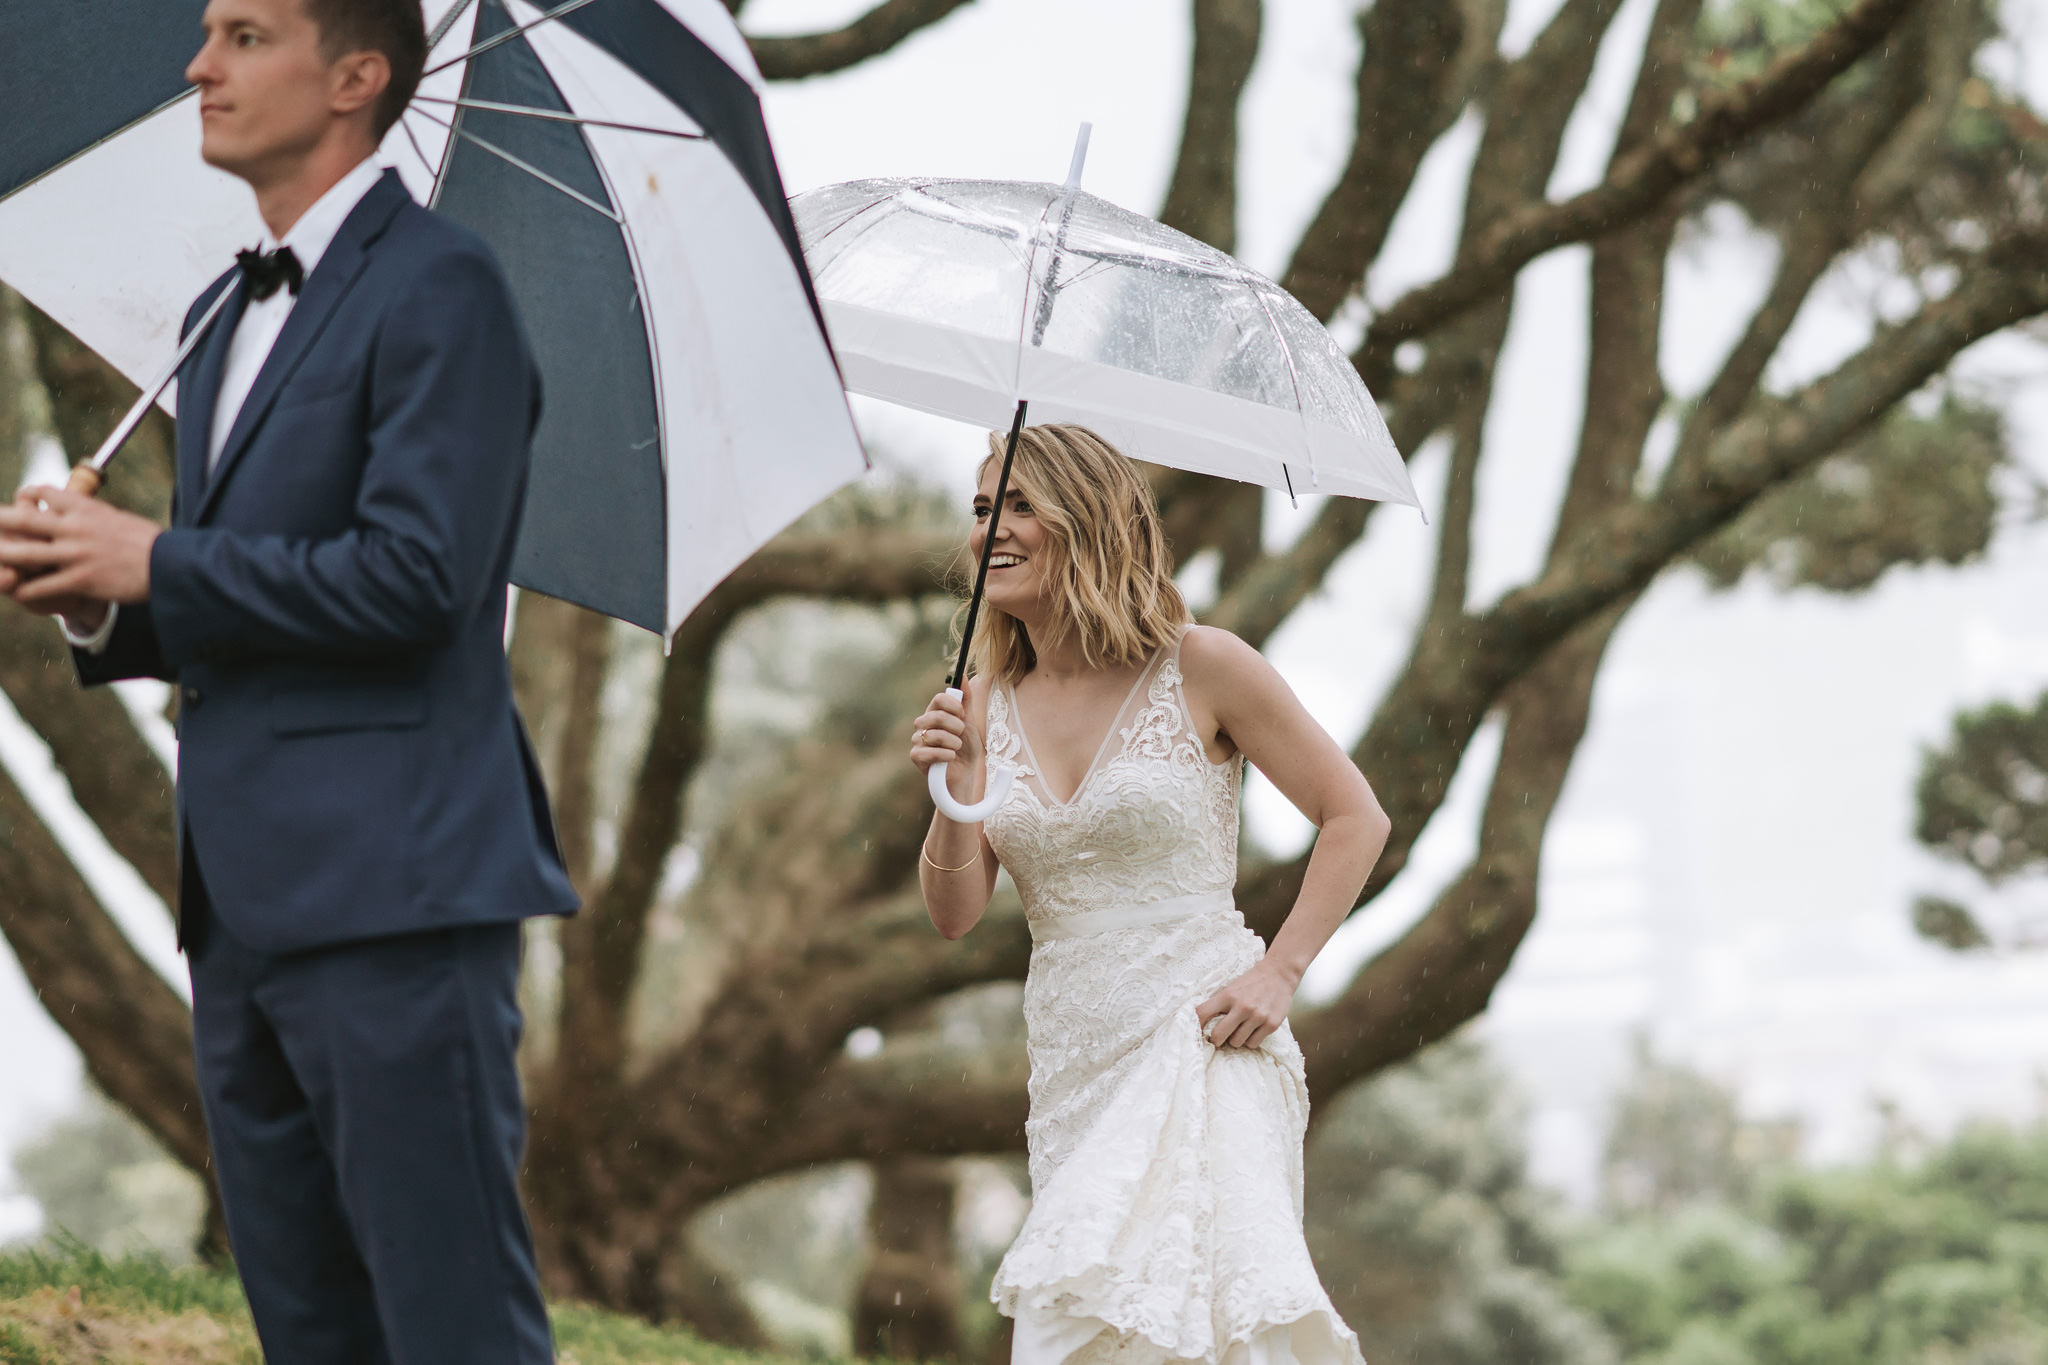 newfound-s-a-tauranga-new-zealand-wedding-photography-173